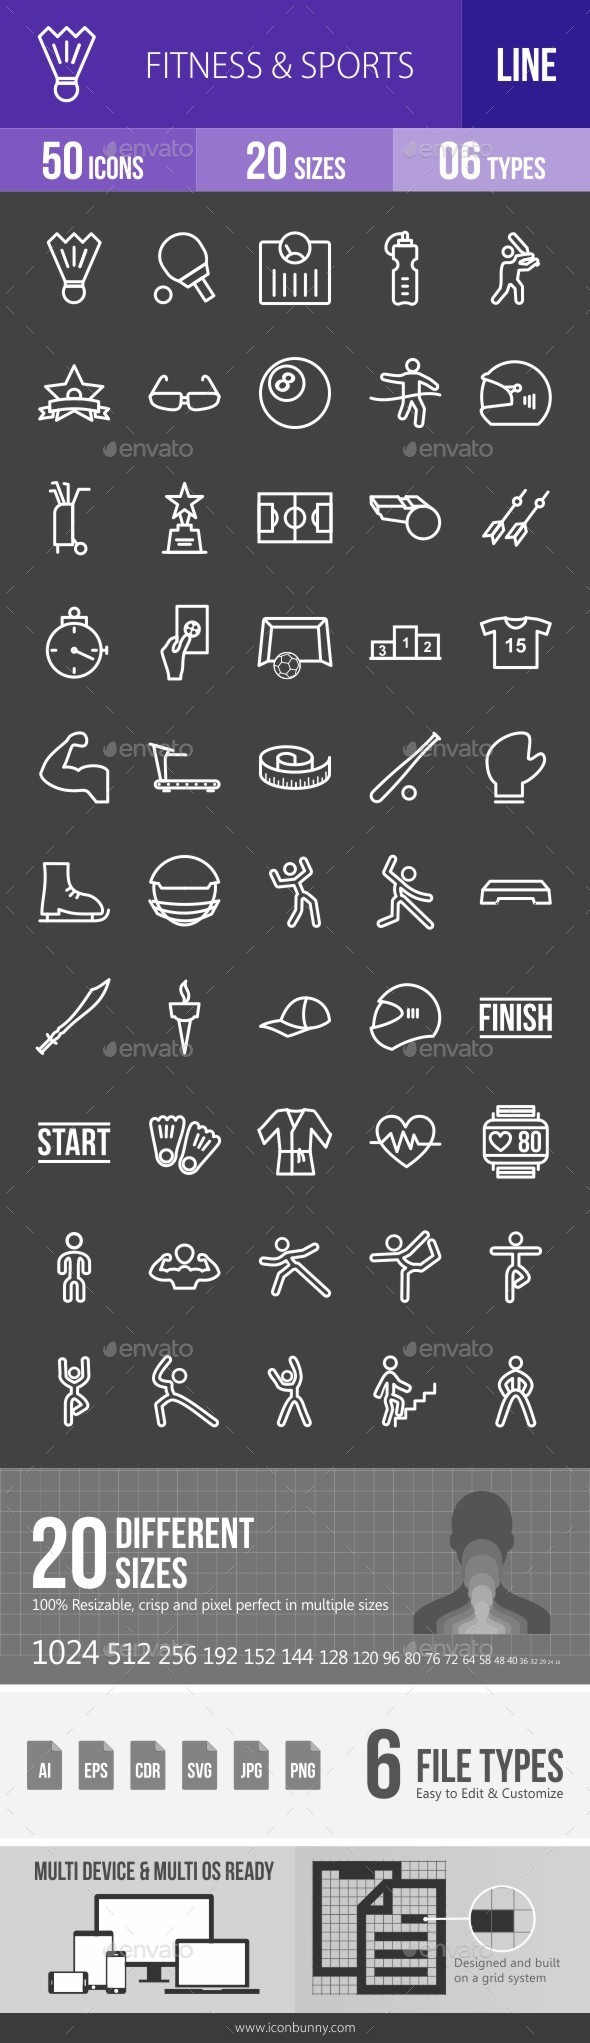 Fitness & Sports Line Inverted Icons - Icons